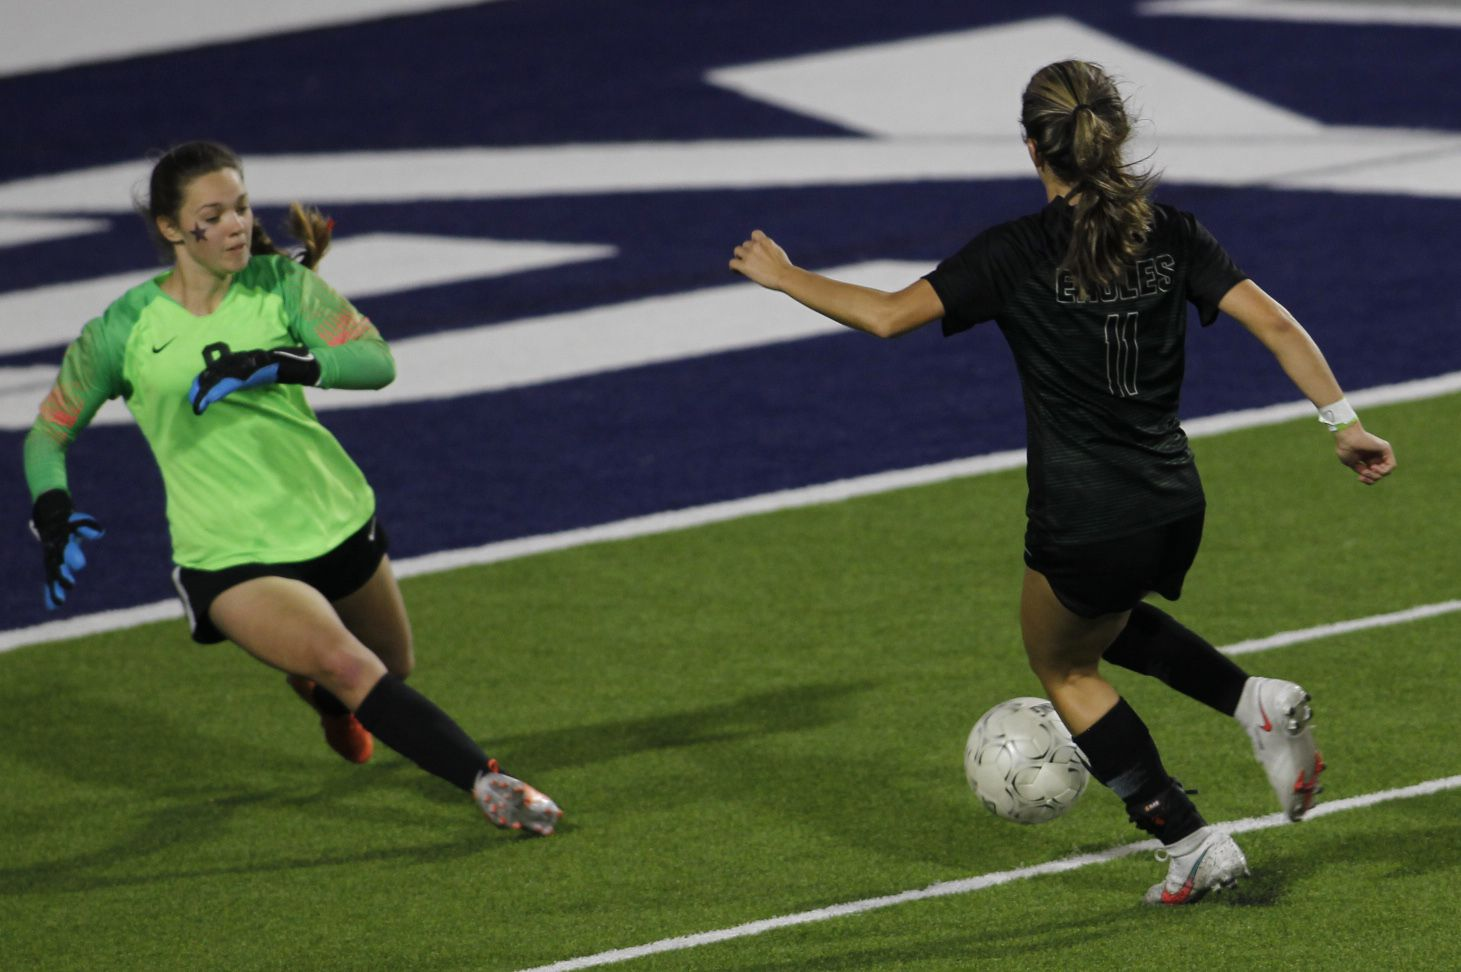 Coppell goalkeeper Zoe Goodale (0), left, aggressively leaves the net to charge Prosper's Emma Yolinsky (11) and save a goal during first half action. Prosper prevailed 2-0 to advance. The two teams played their Class 6A bi-district girls soccer playoff game at McKinney ISD Stadium in McKinney on March 26, 2021. (Steve Hamm/ Special Contributor)